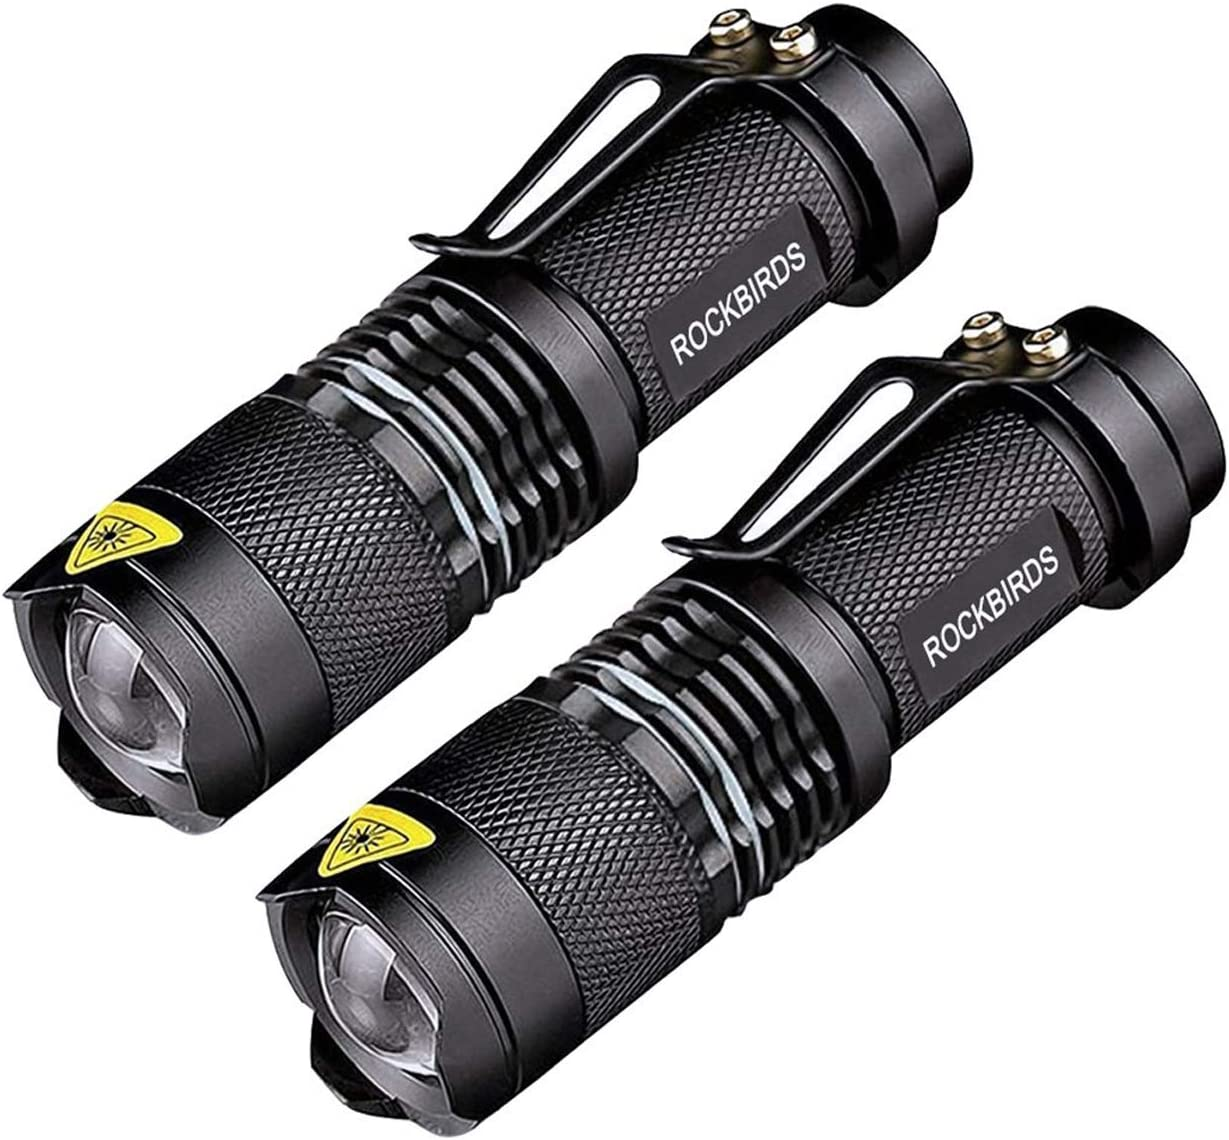 2 Pack Flashlights, ROCKBIRDS LED Flashlight with Belt Clip, 2 PACK